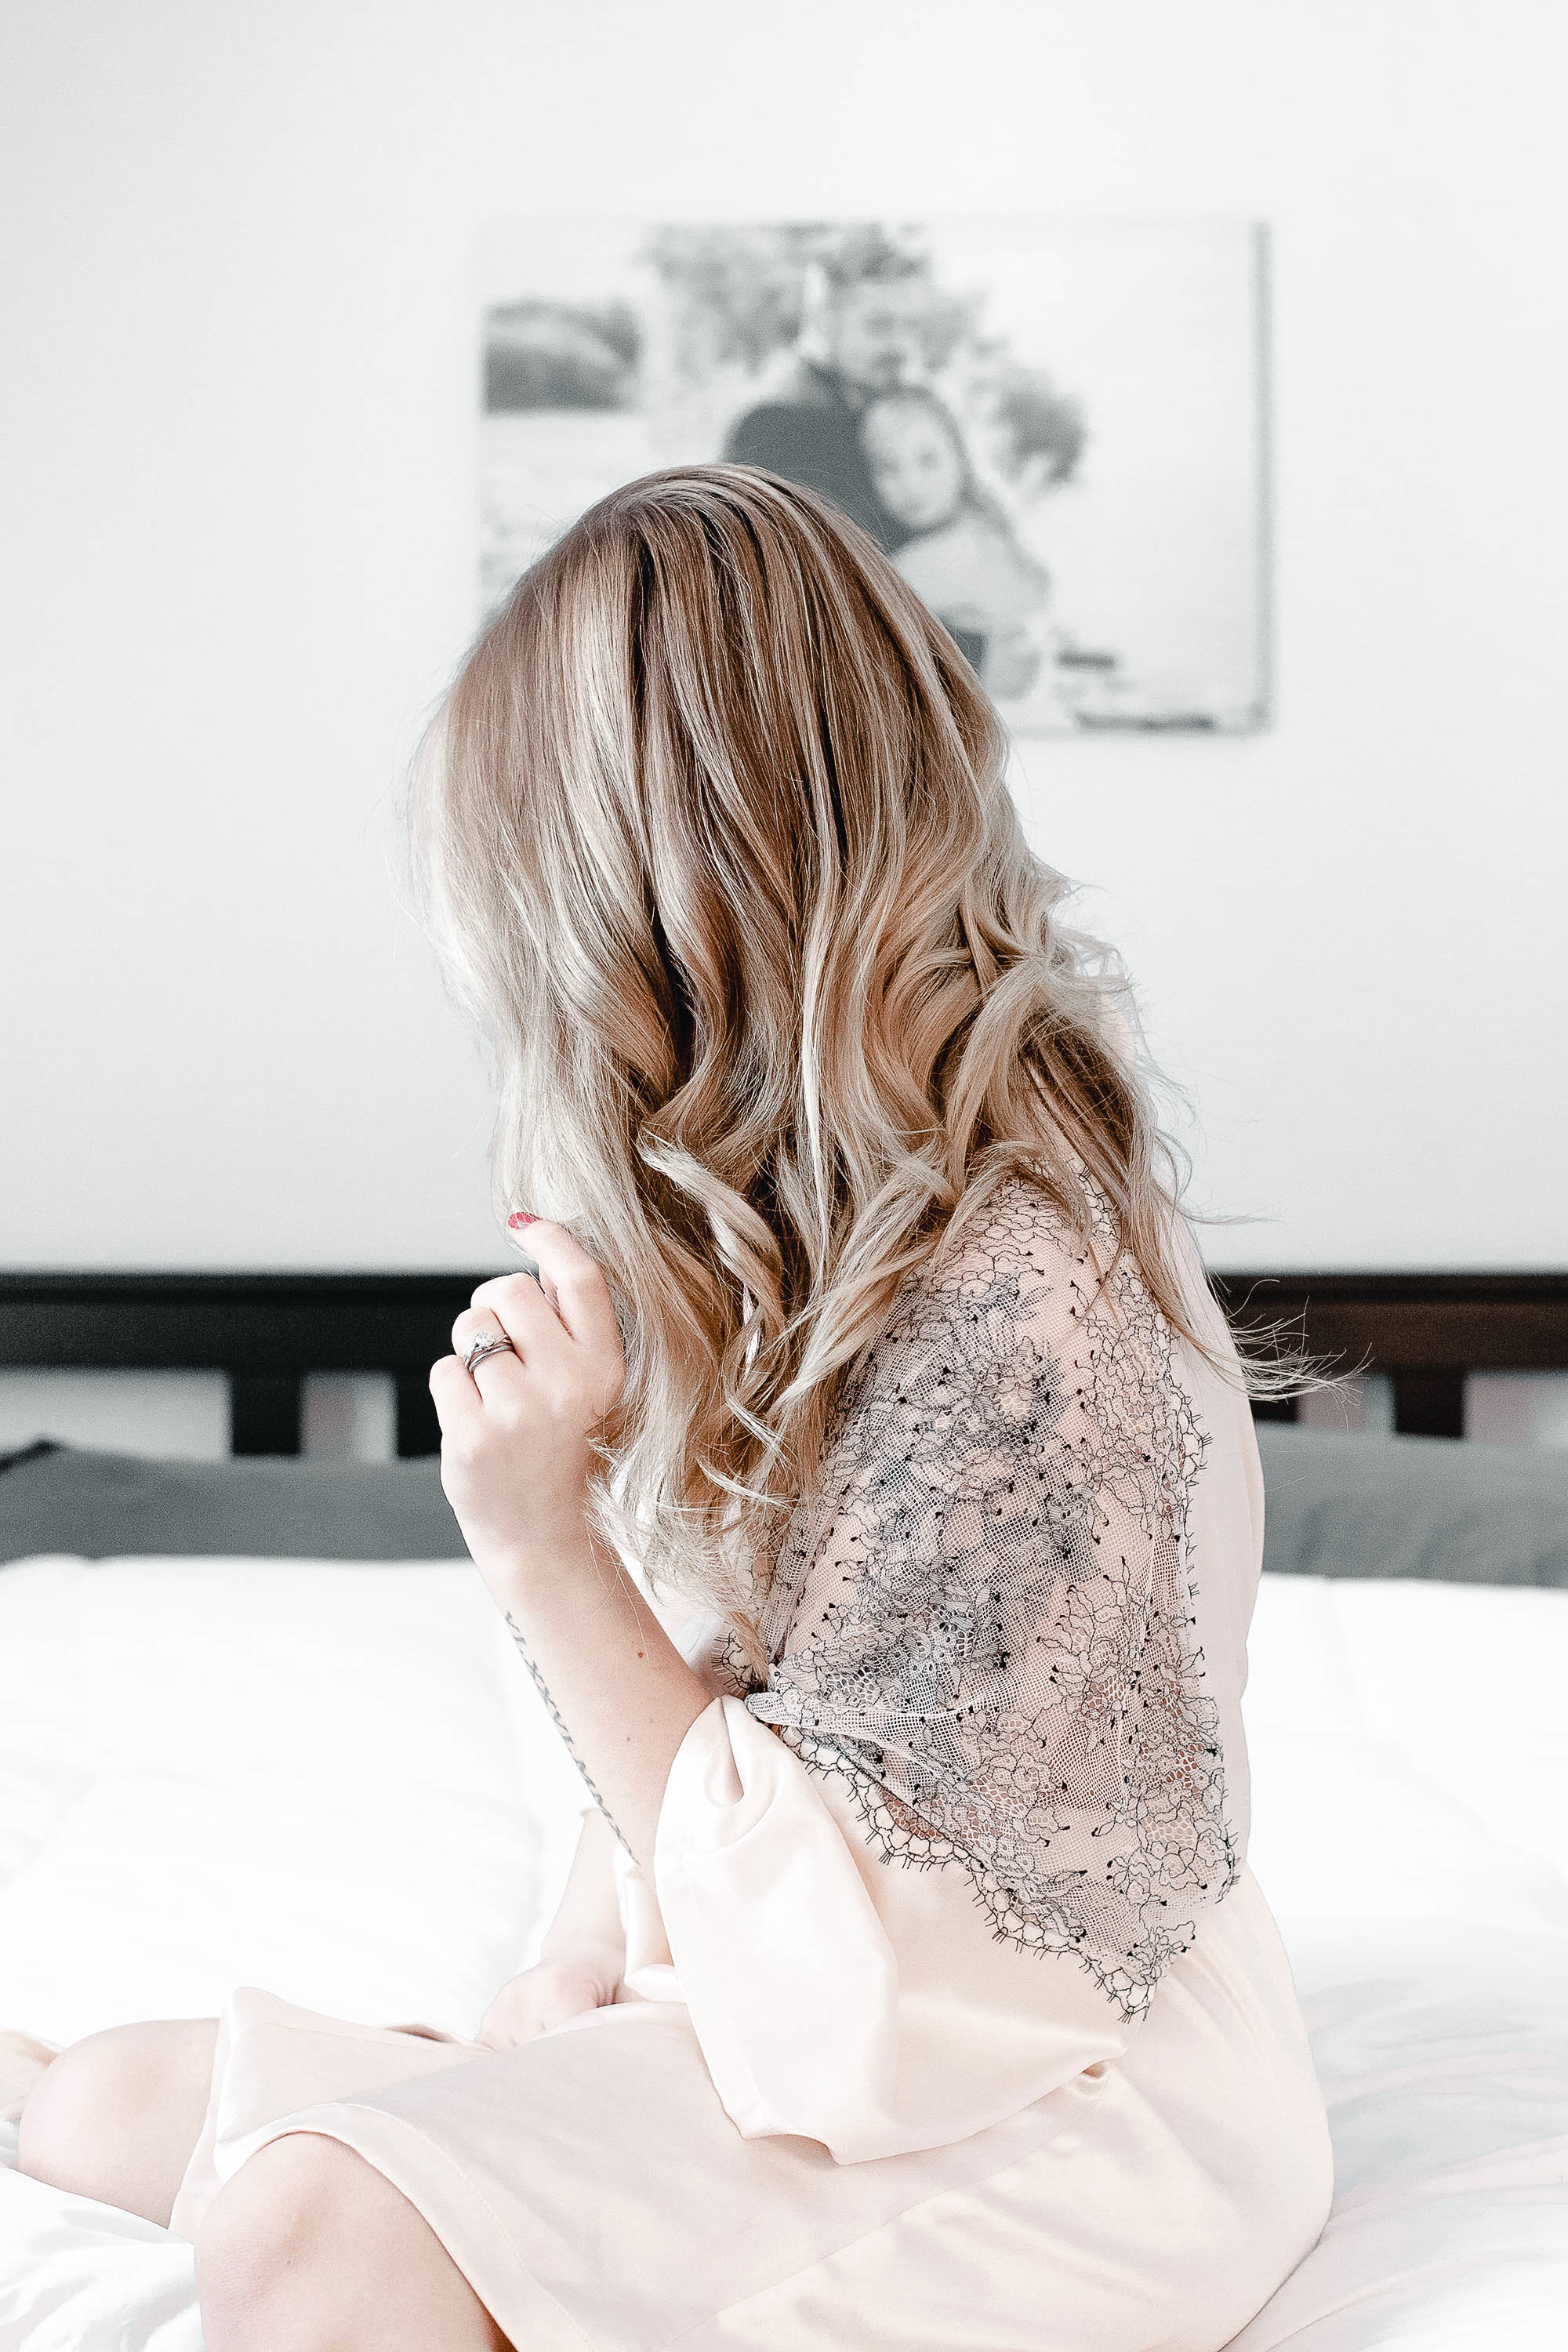 7 Tips For Healthy Hair | Coffee With Summer